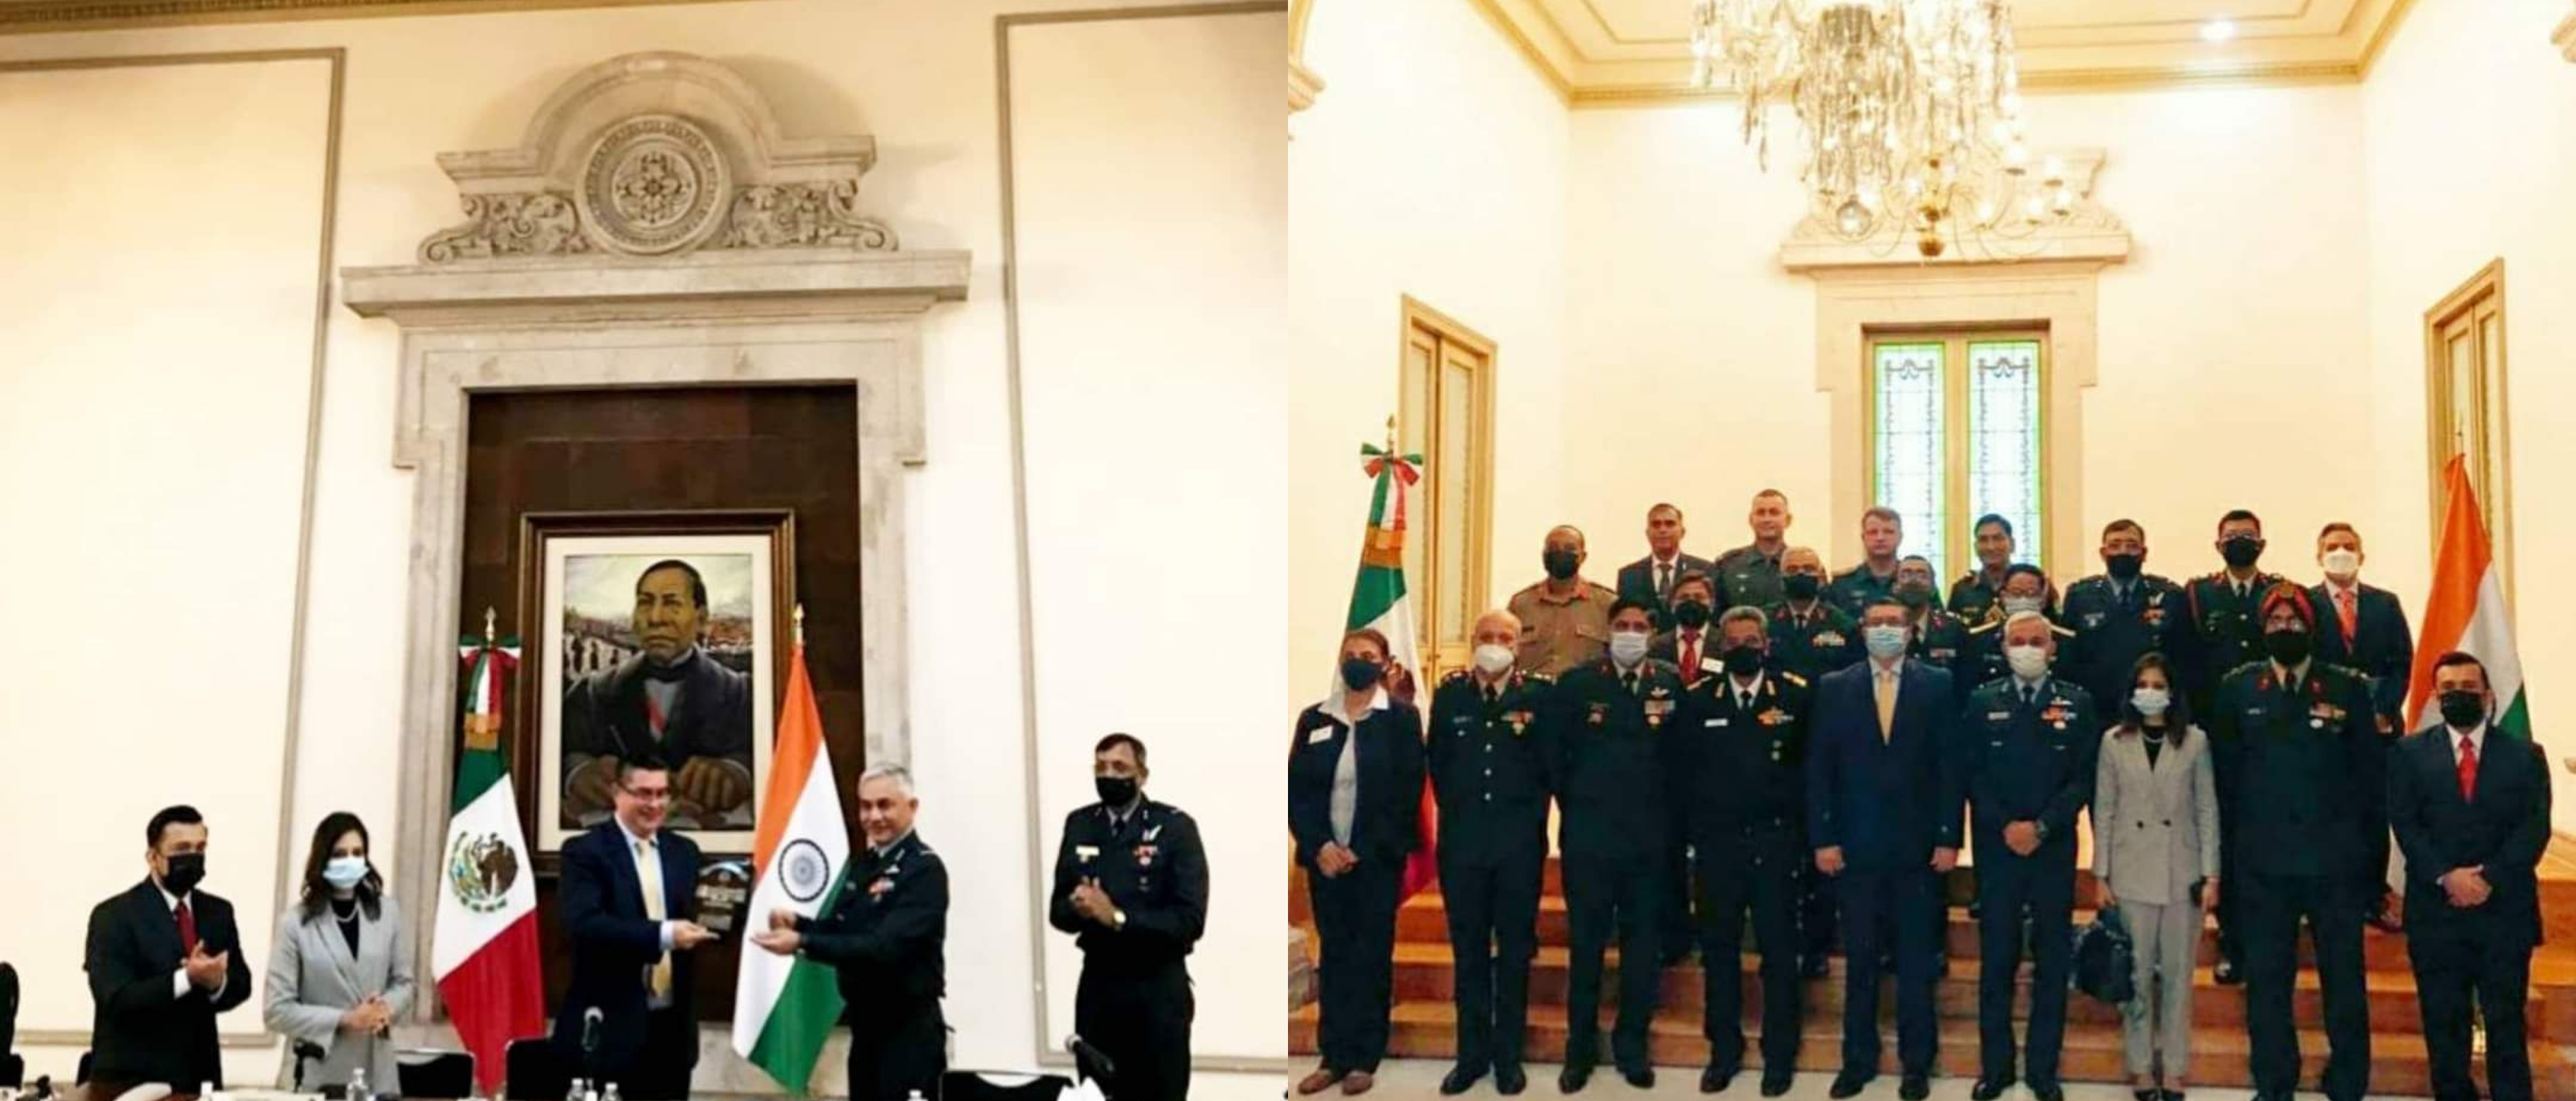 India's National Defense College's delegation visited Mexico's Ministry of Interior.